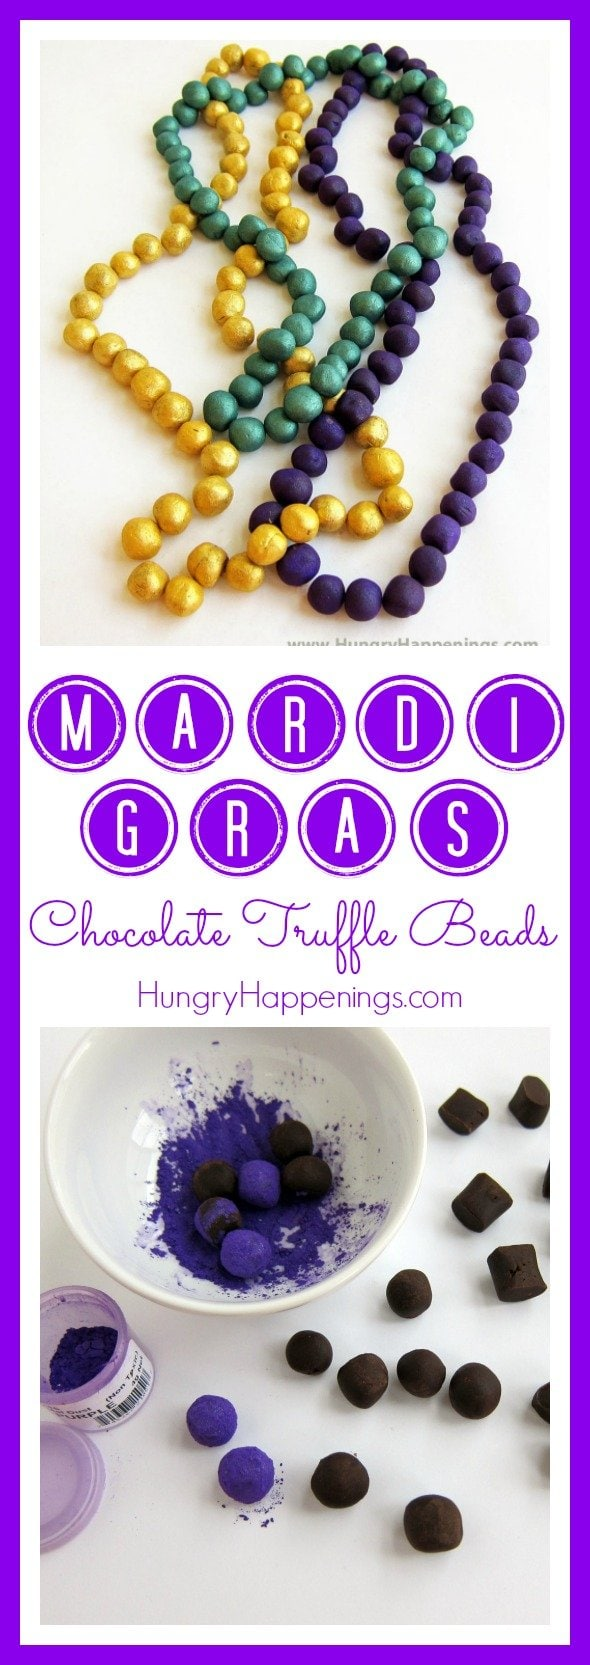 What is Mardi Gras more known for than the colorful beads! Get creative and make these Mardi Gras Chocolate Truffle Beads, you can't go wrong with this delicious dessert and it's a simple recipe if you don't have much time on your hands!